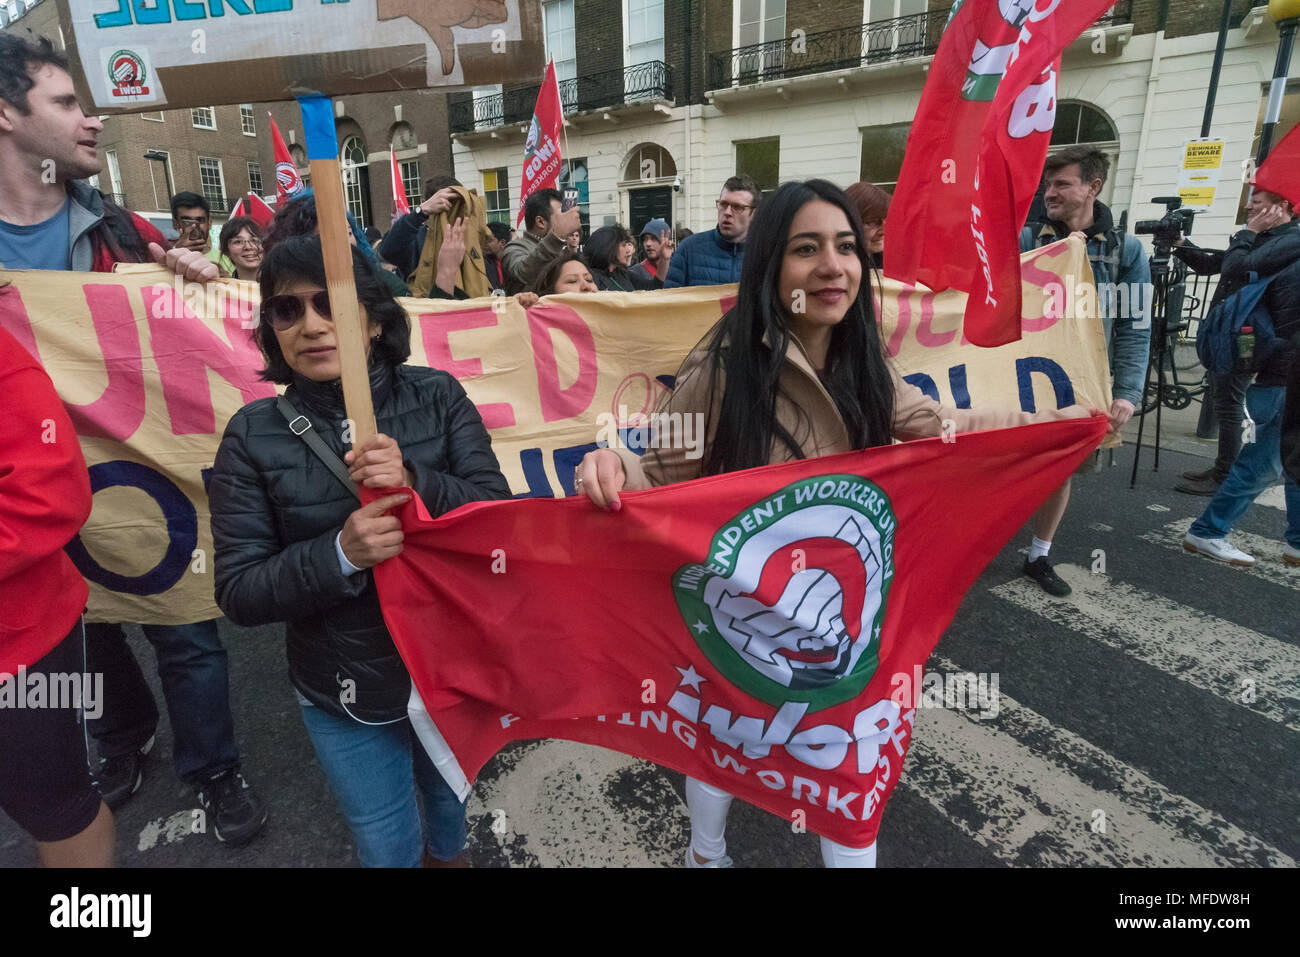 London, UK. 25th April 2018. People carry IWGB and UVW banners on the march from the rally by workers, students and other trade unionists supporting over 100 cleaners, porters, security officers, receptionists, gardeners, post room staff and audiovisual staff in the Independent Workers Union of Great Britain - IWGB at the end of the first day of a two day strike at the University of London central administration. The workers, employed by various outsourcing companies are demanding to be directly employed by the University, and receive the same conditions and benefits as directly employed colle - Stock Image